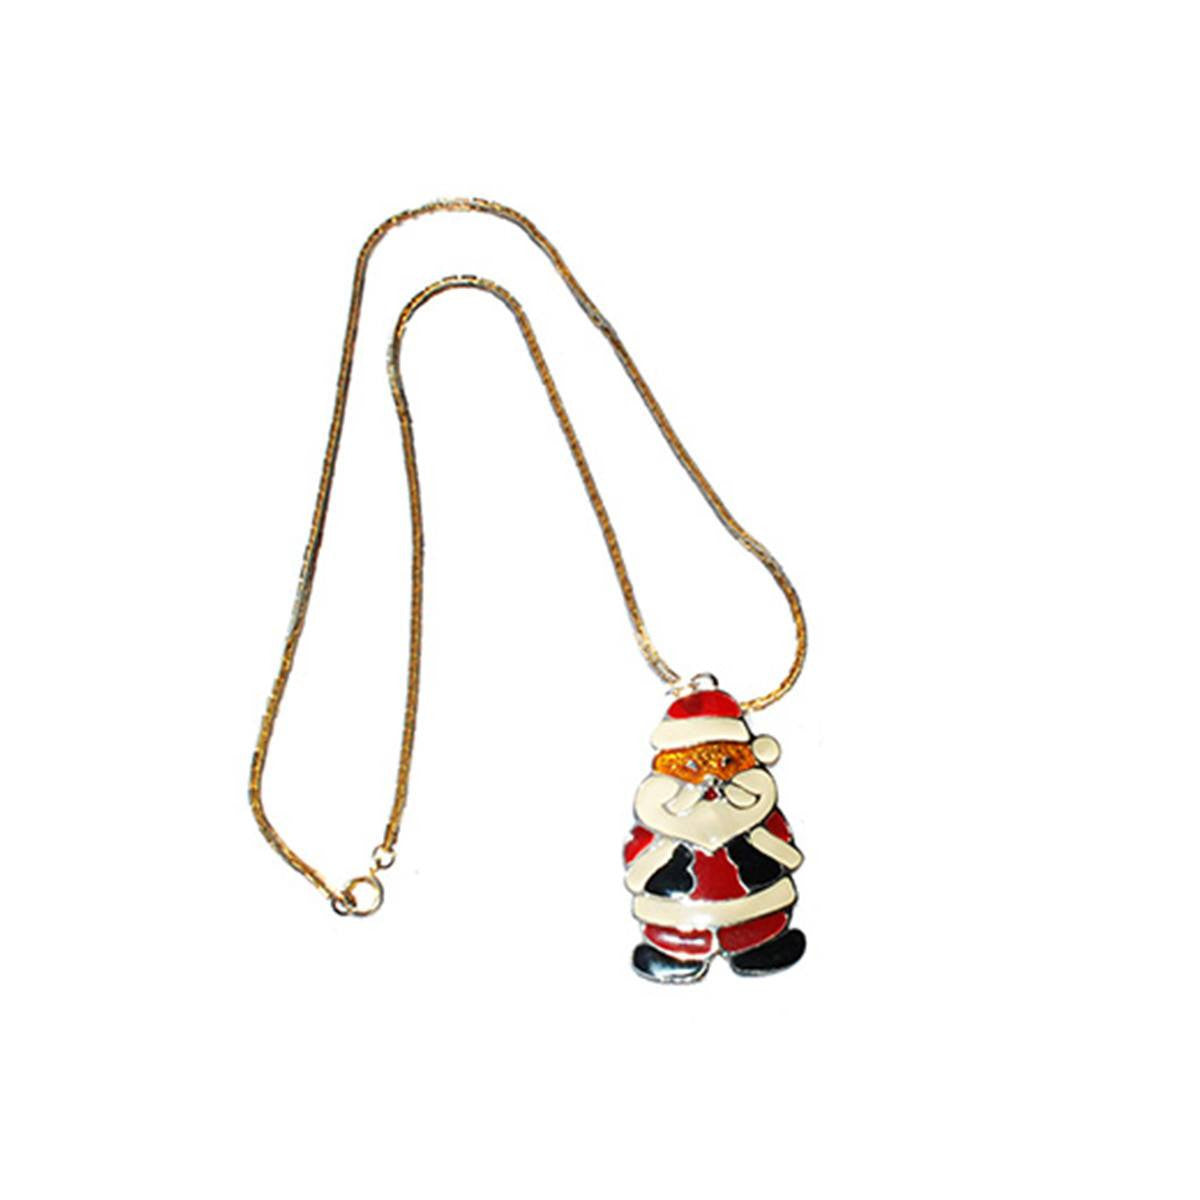 Santa Claus Pendant Necklace by Wallace Silversmiths, 20